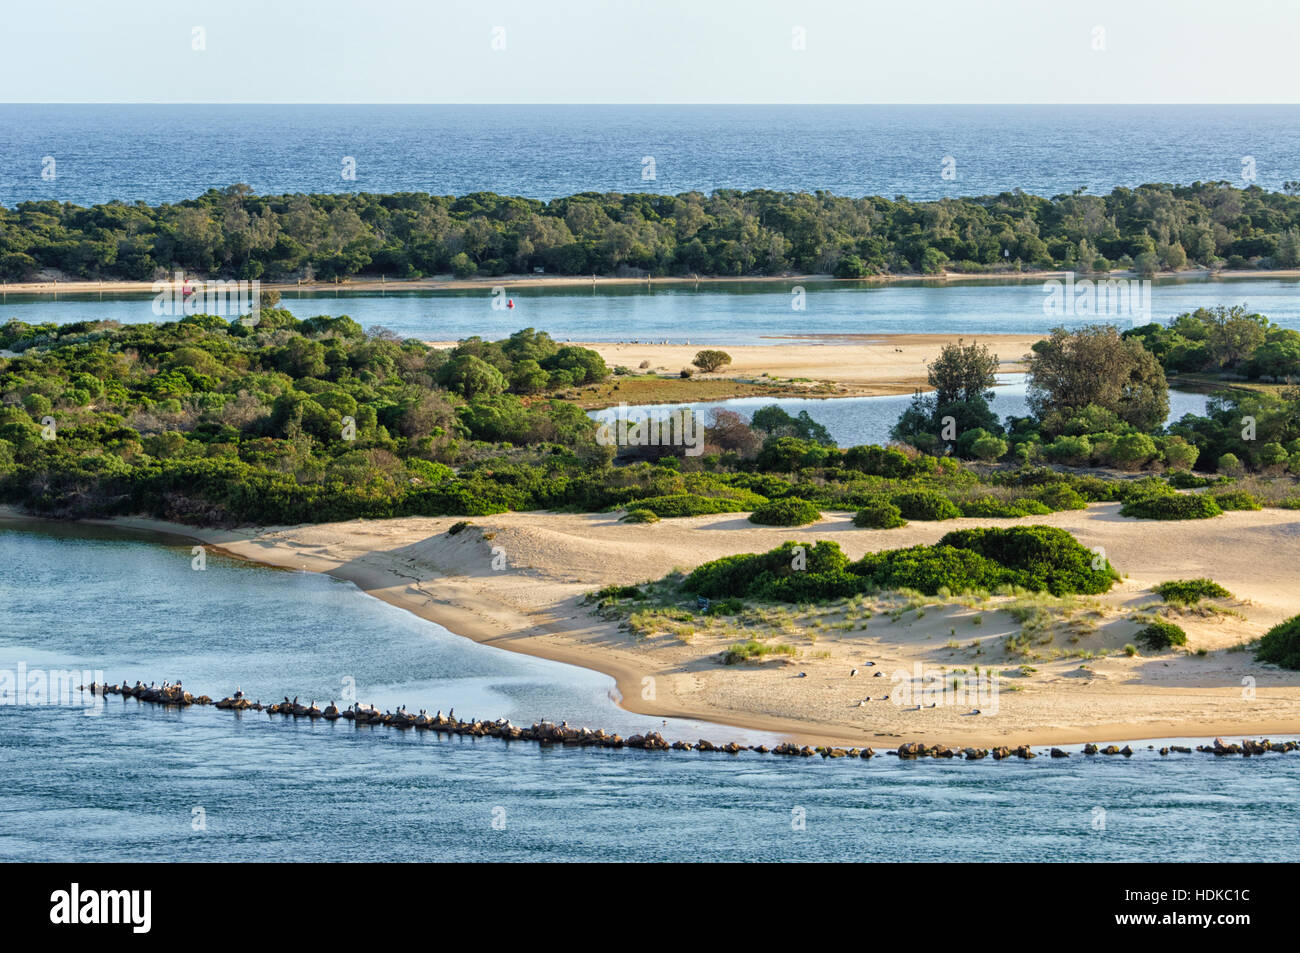 View of the inland waterways of Lakes Entrance with Bass Strait in the distance, Victoria, VIC, Australia - Stock Image